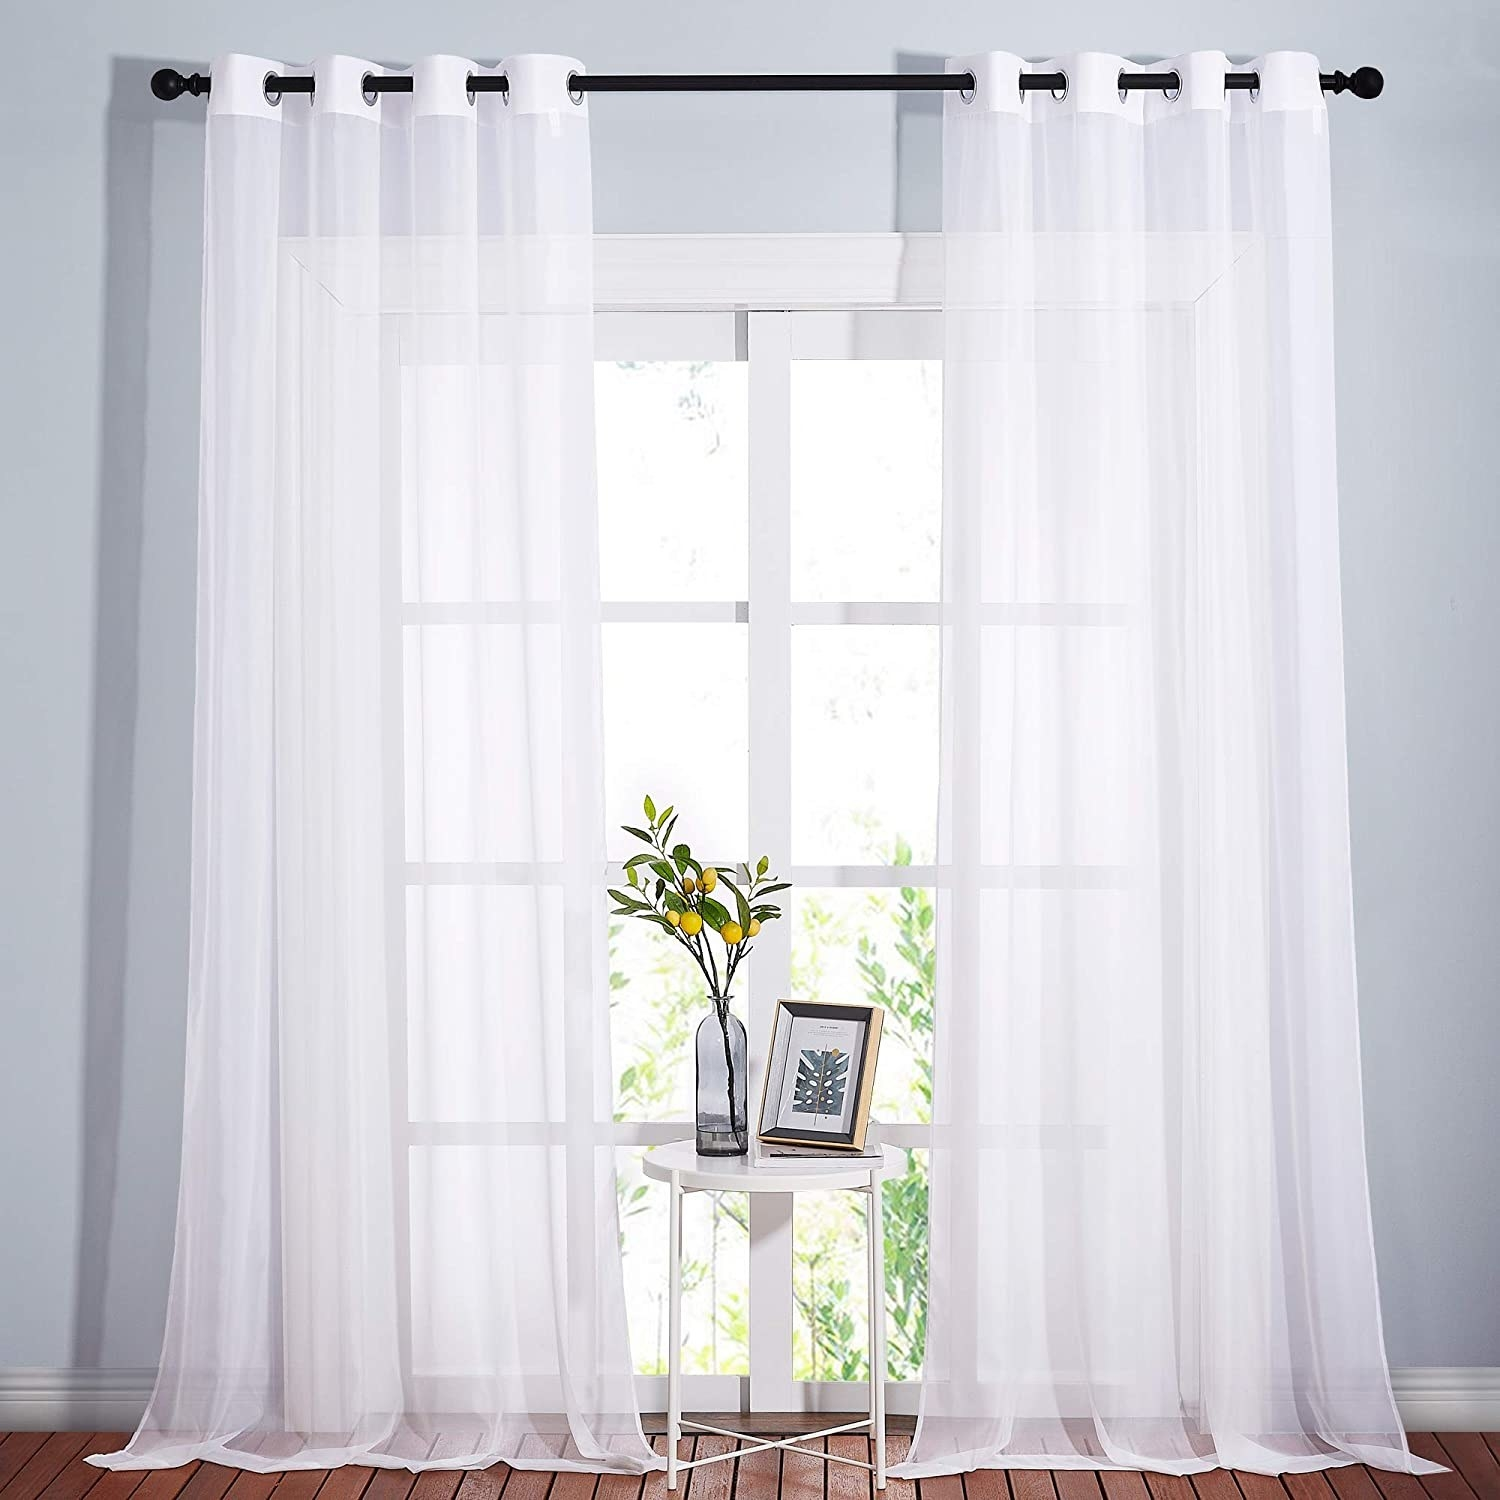 the curtains on a rod over a large window with a table in front of it